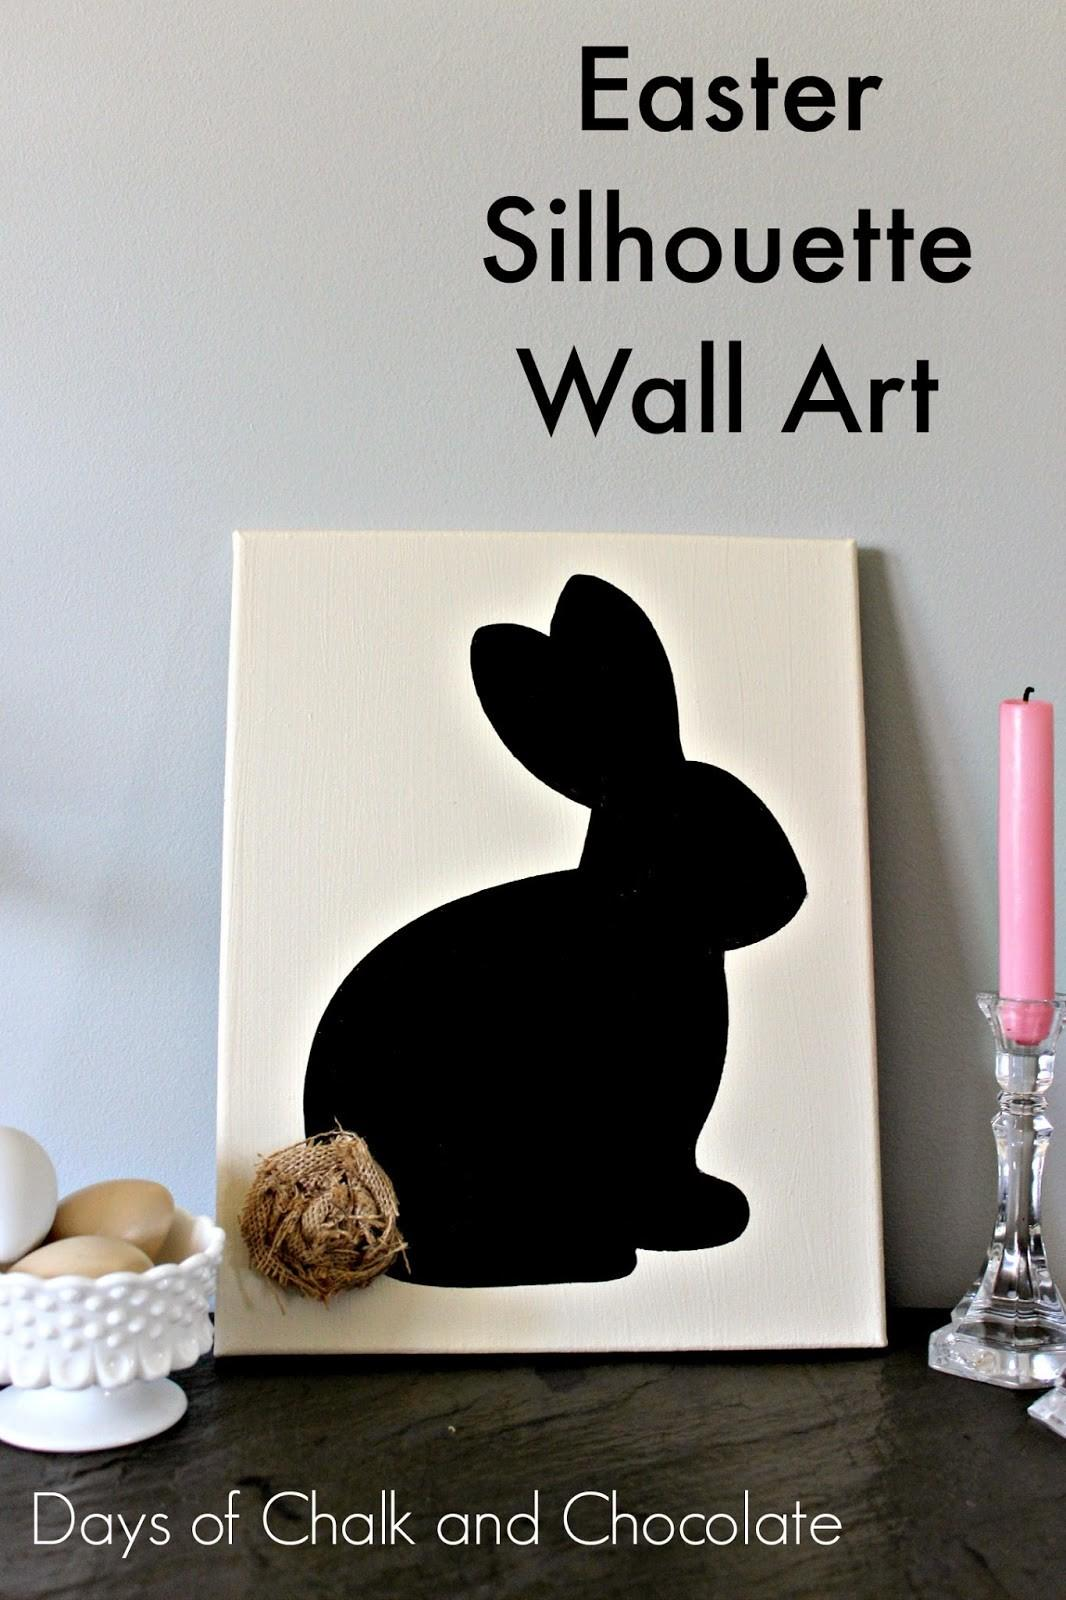 Can Make Easter Silhouette Wall Art Days Chalk